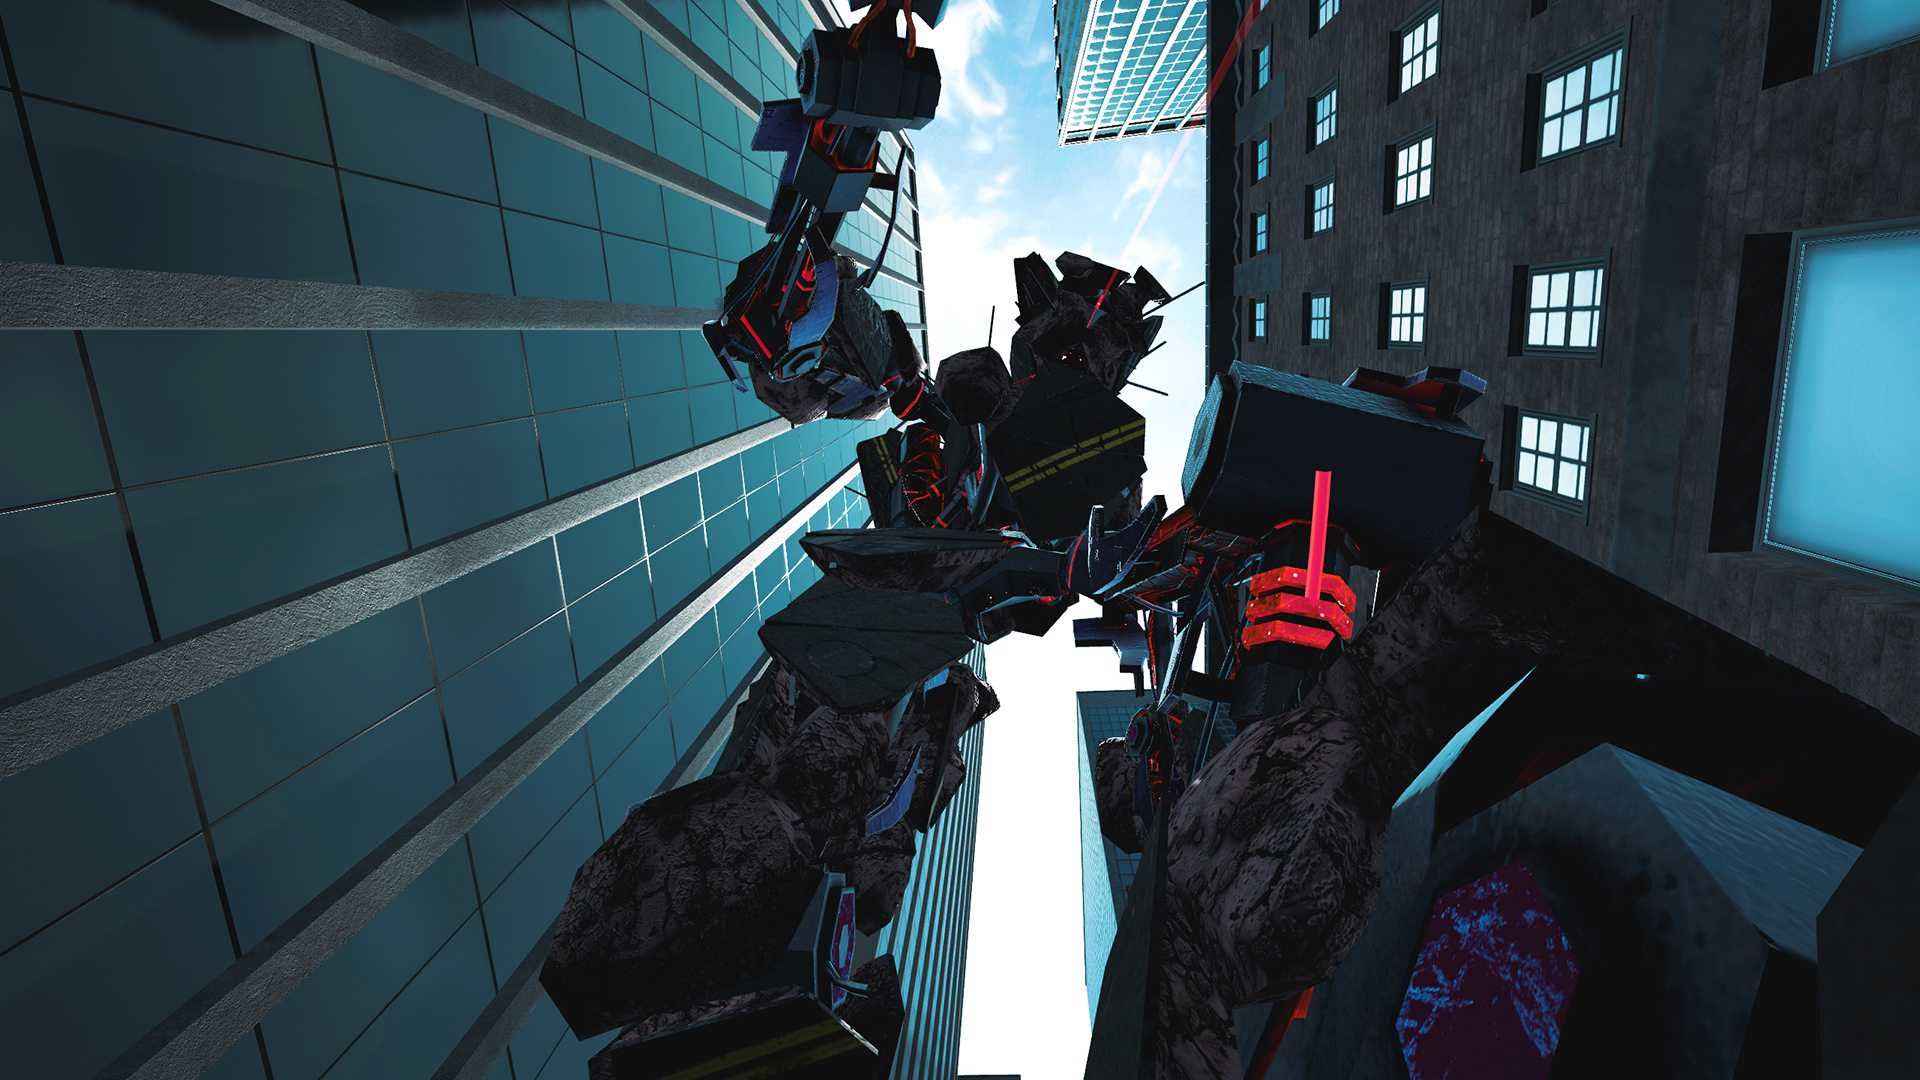 LA EXPERIENCIA DE REALIDAD VIRTUAL DE SPIDER-MAN: FAR FROM HOM